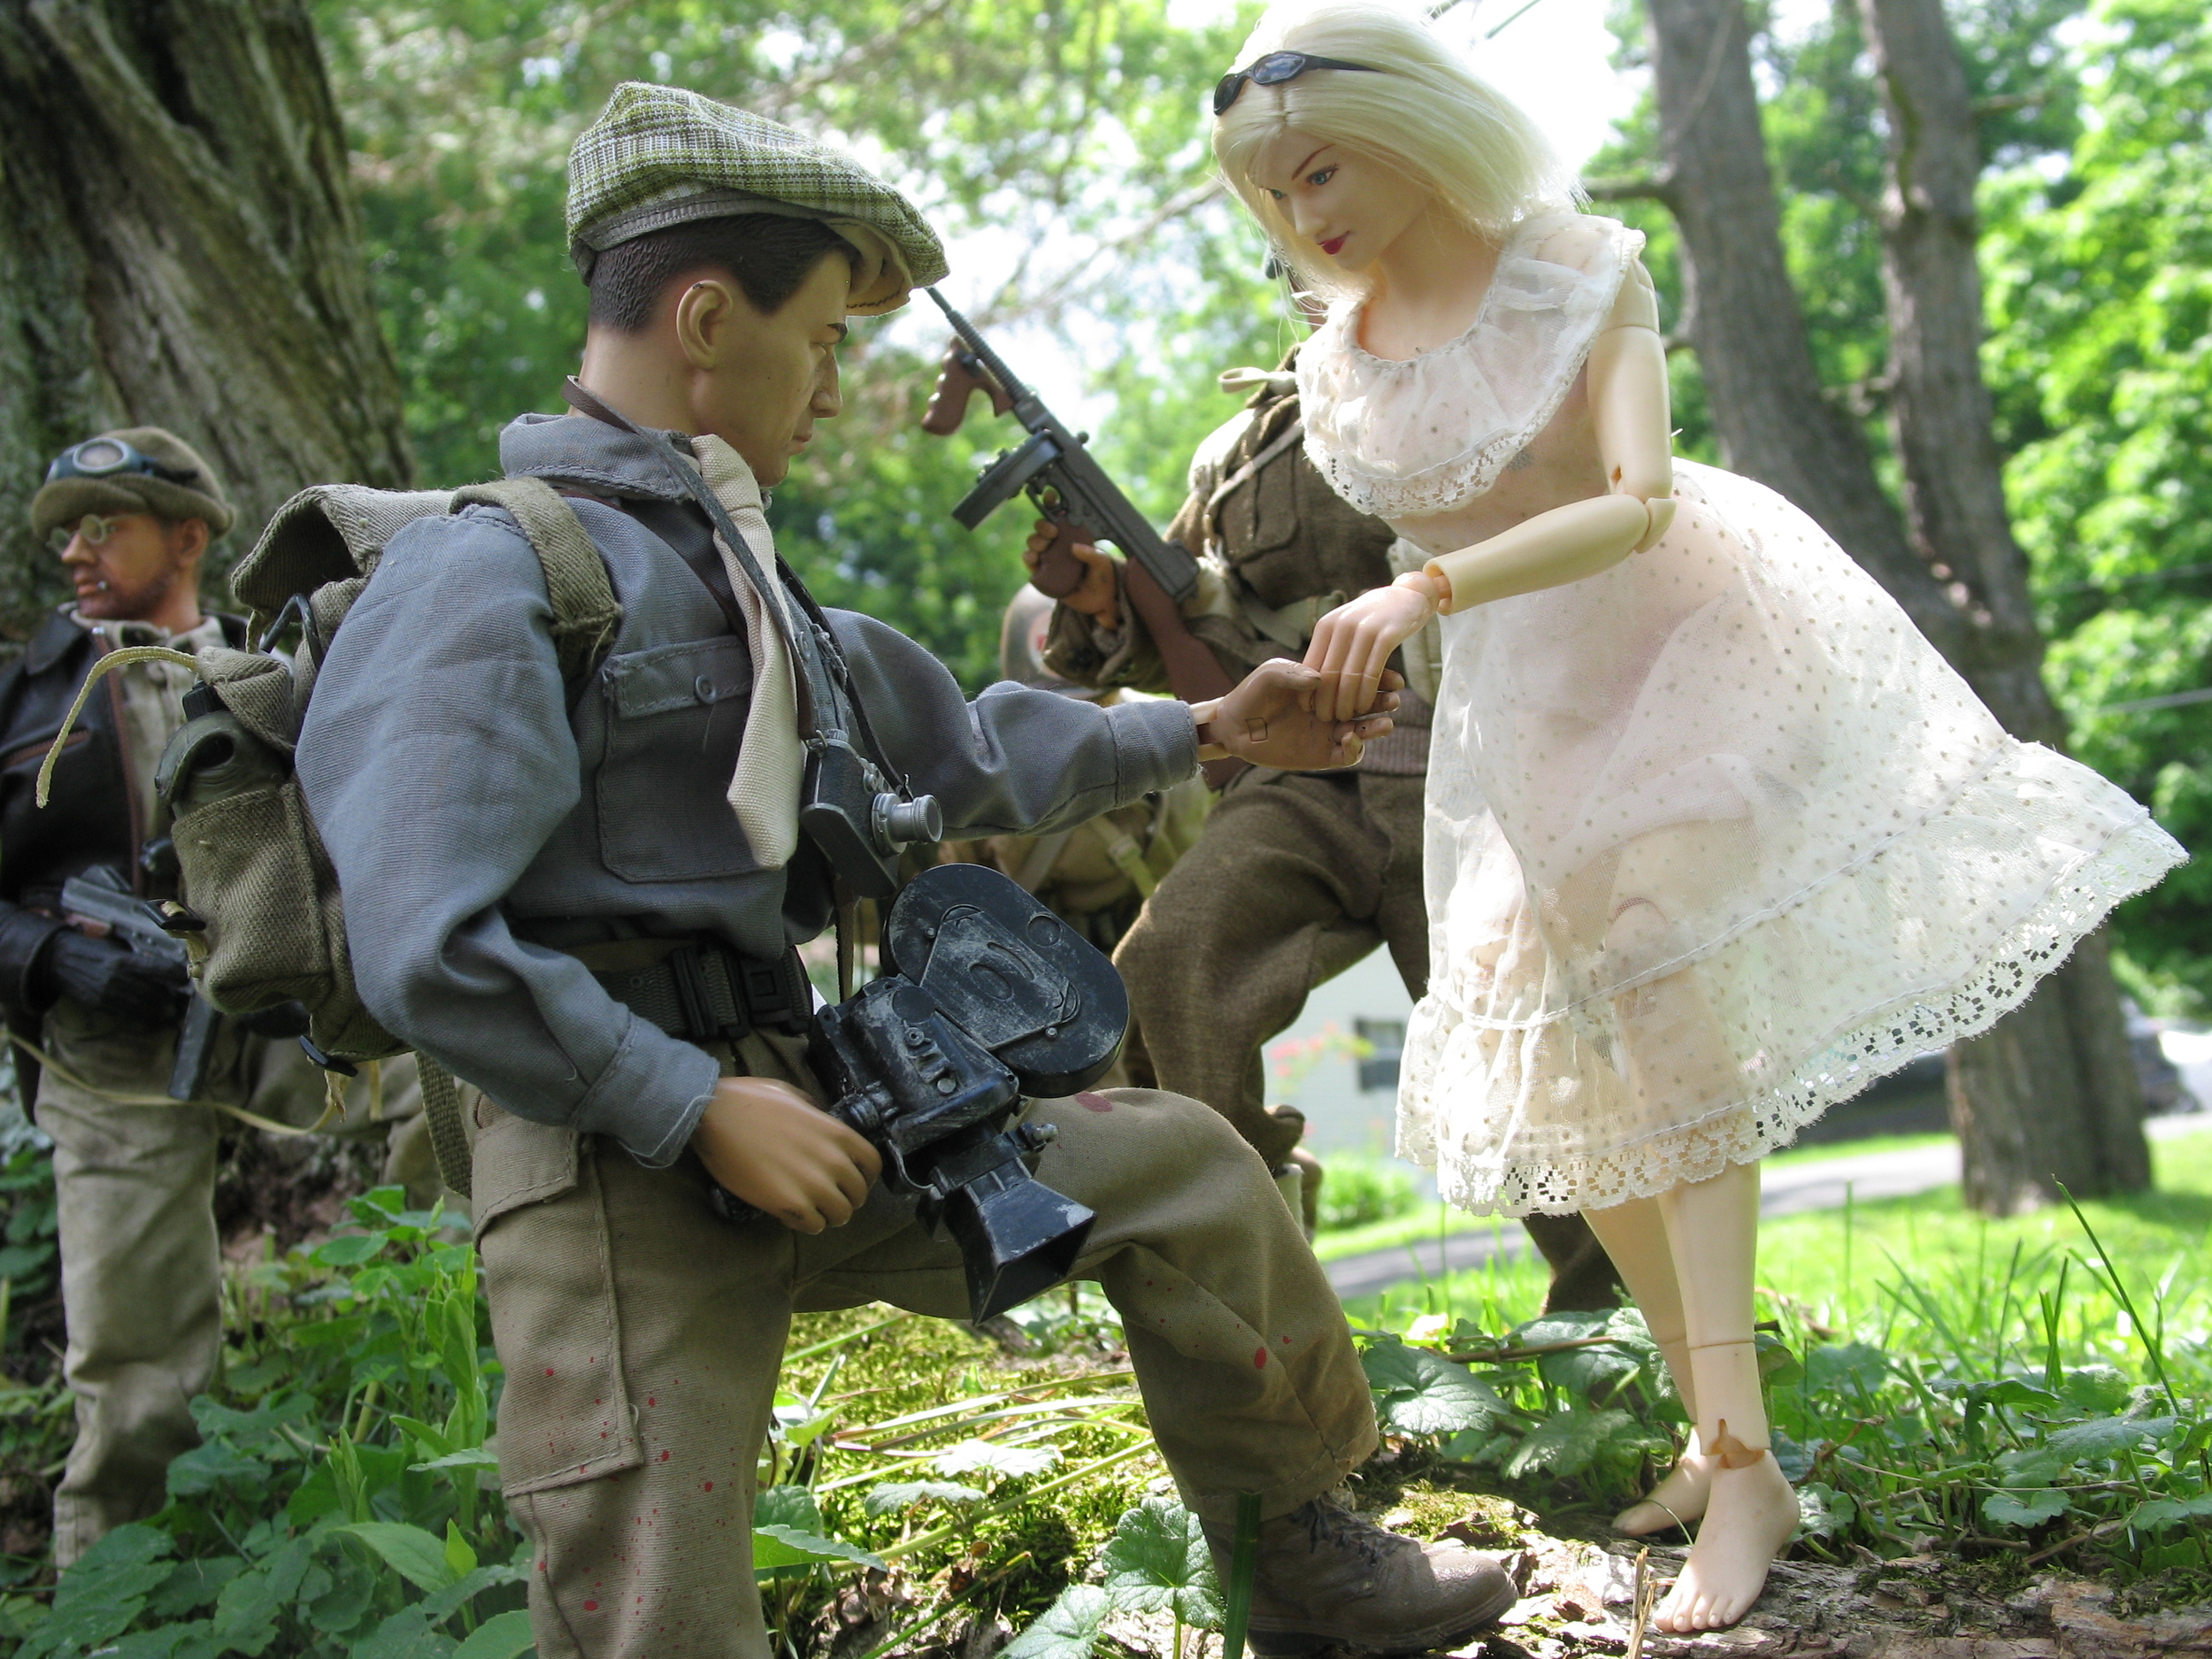 SXSW 2010: Marwencol and Brotherhood